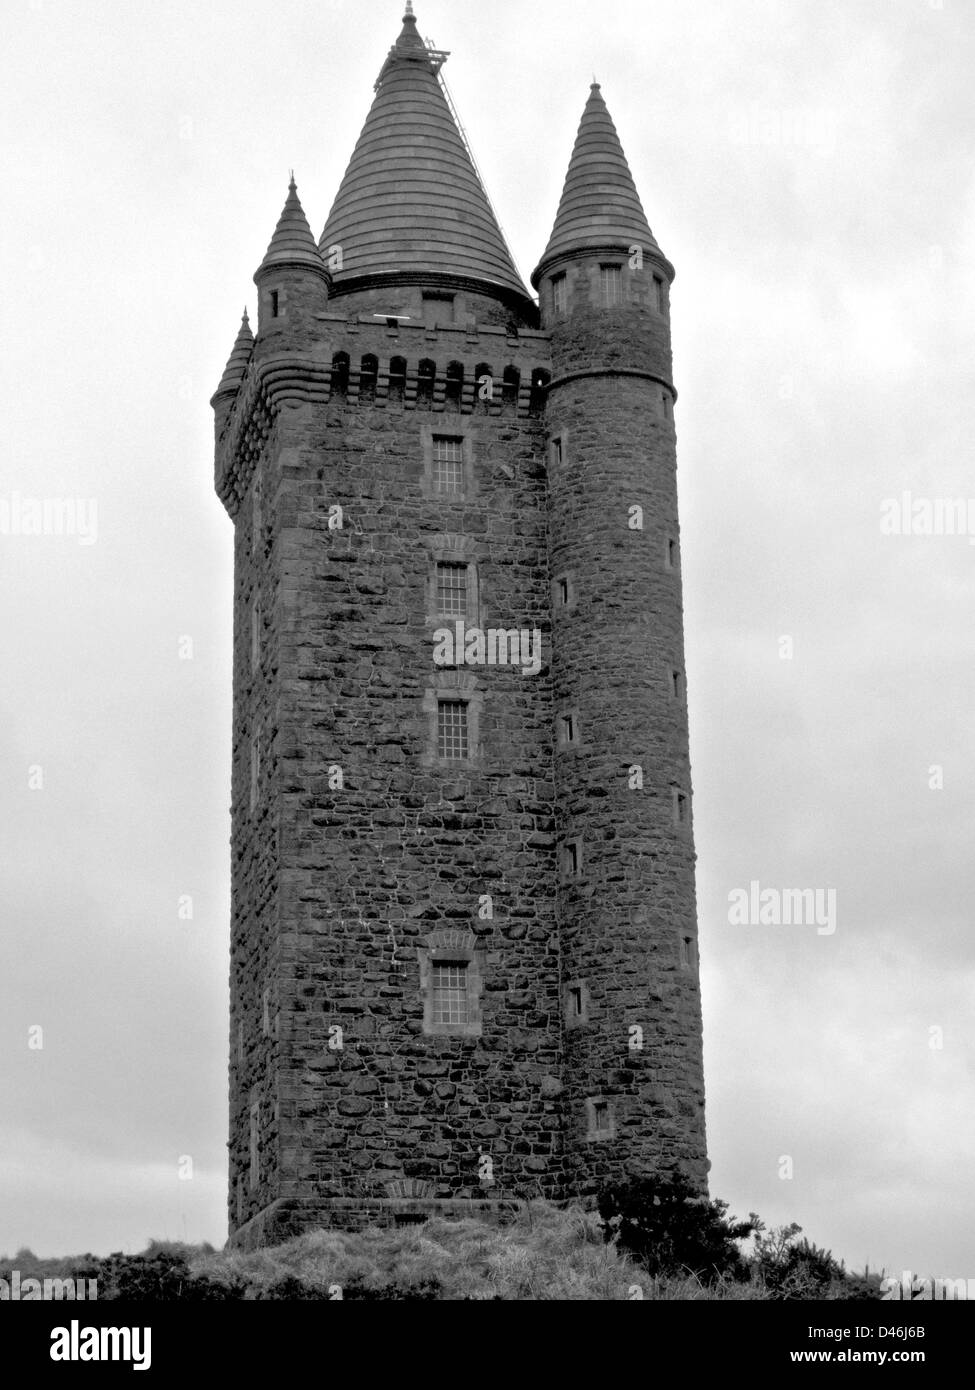 Scrabo Tower, Newtownards, Co Down, Northern Ireland. - Stock Image